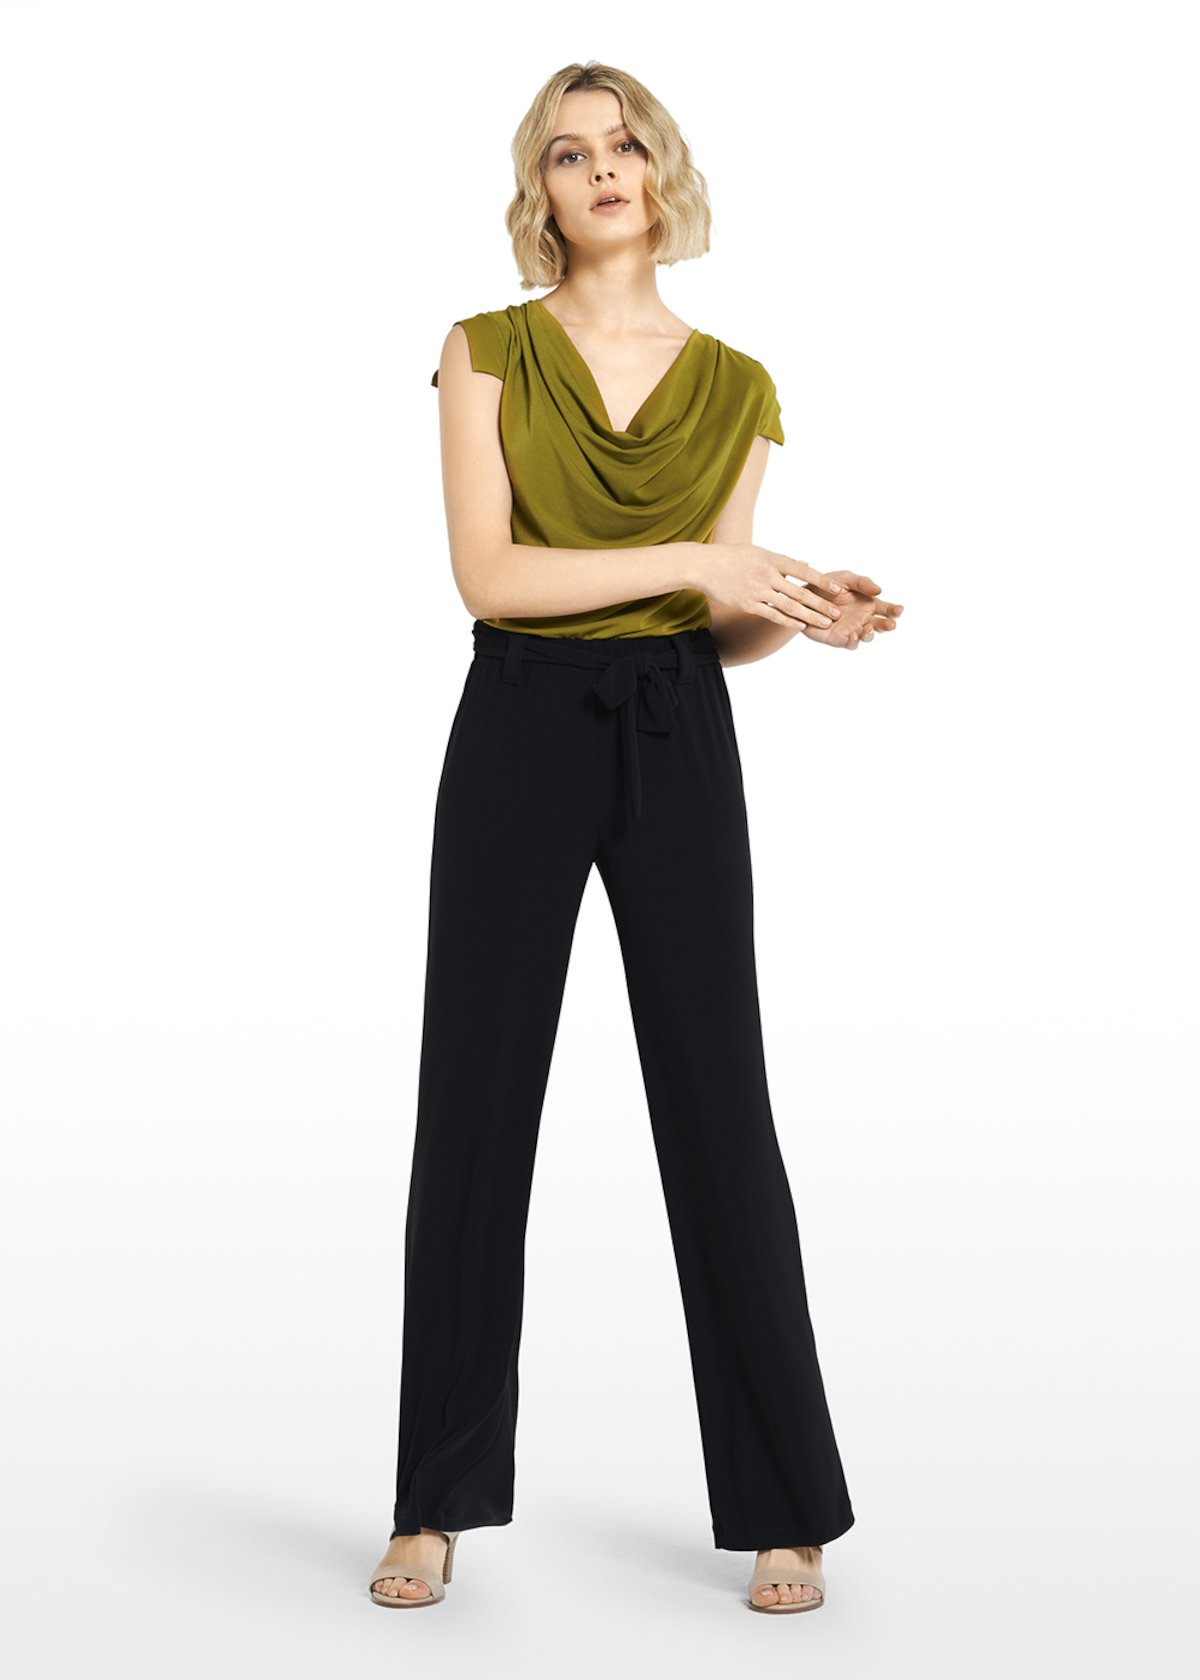 Pincher jersey trousers with sash - Black - Woman